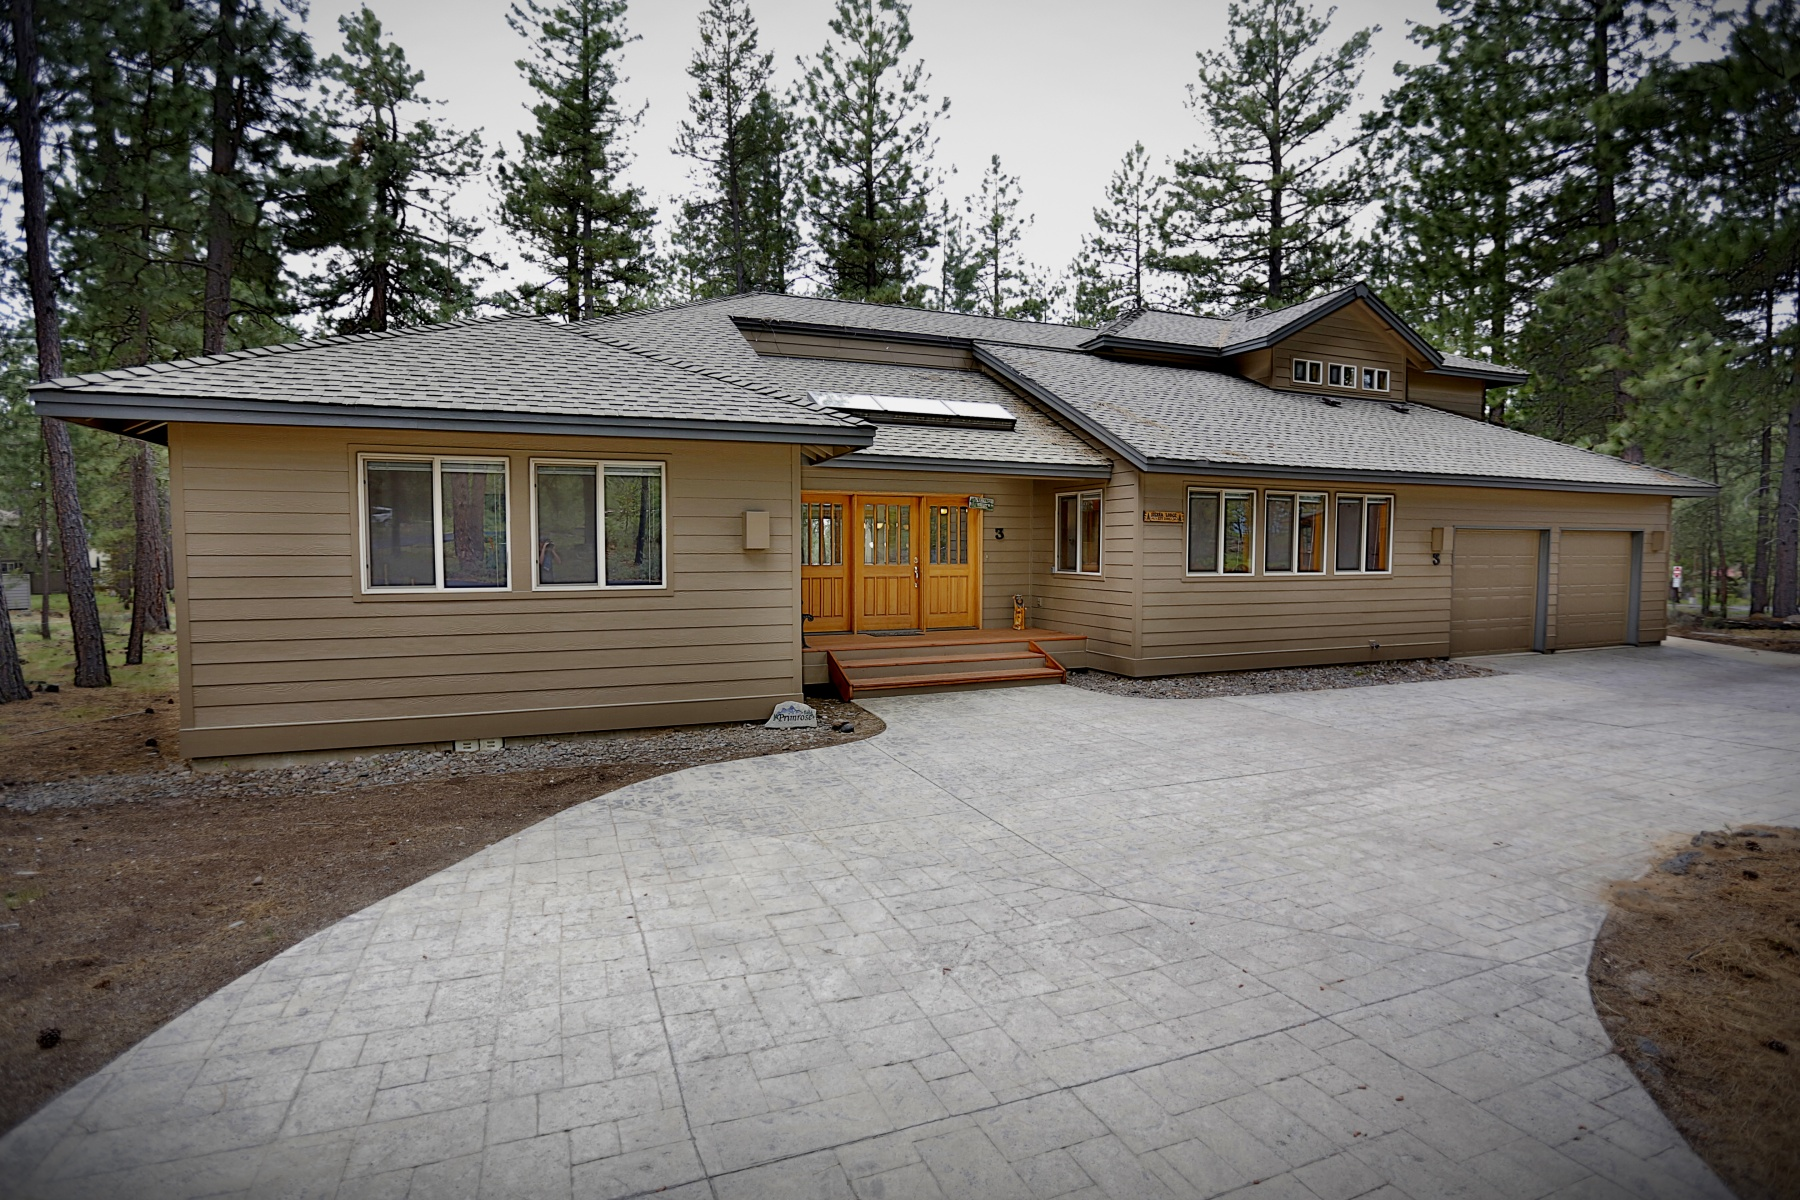 Maison unifamiliale pour l Vente à Spacious 3600 Sq Ft Fort Rock Gem 3 Newberry Ln Sunriver, Oregon, 97707 États-Unis